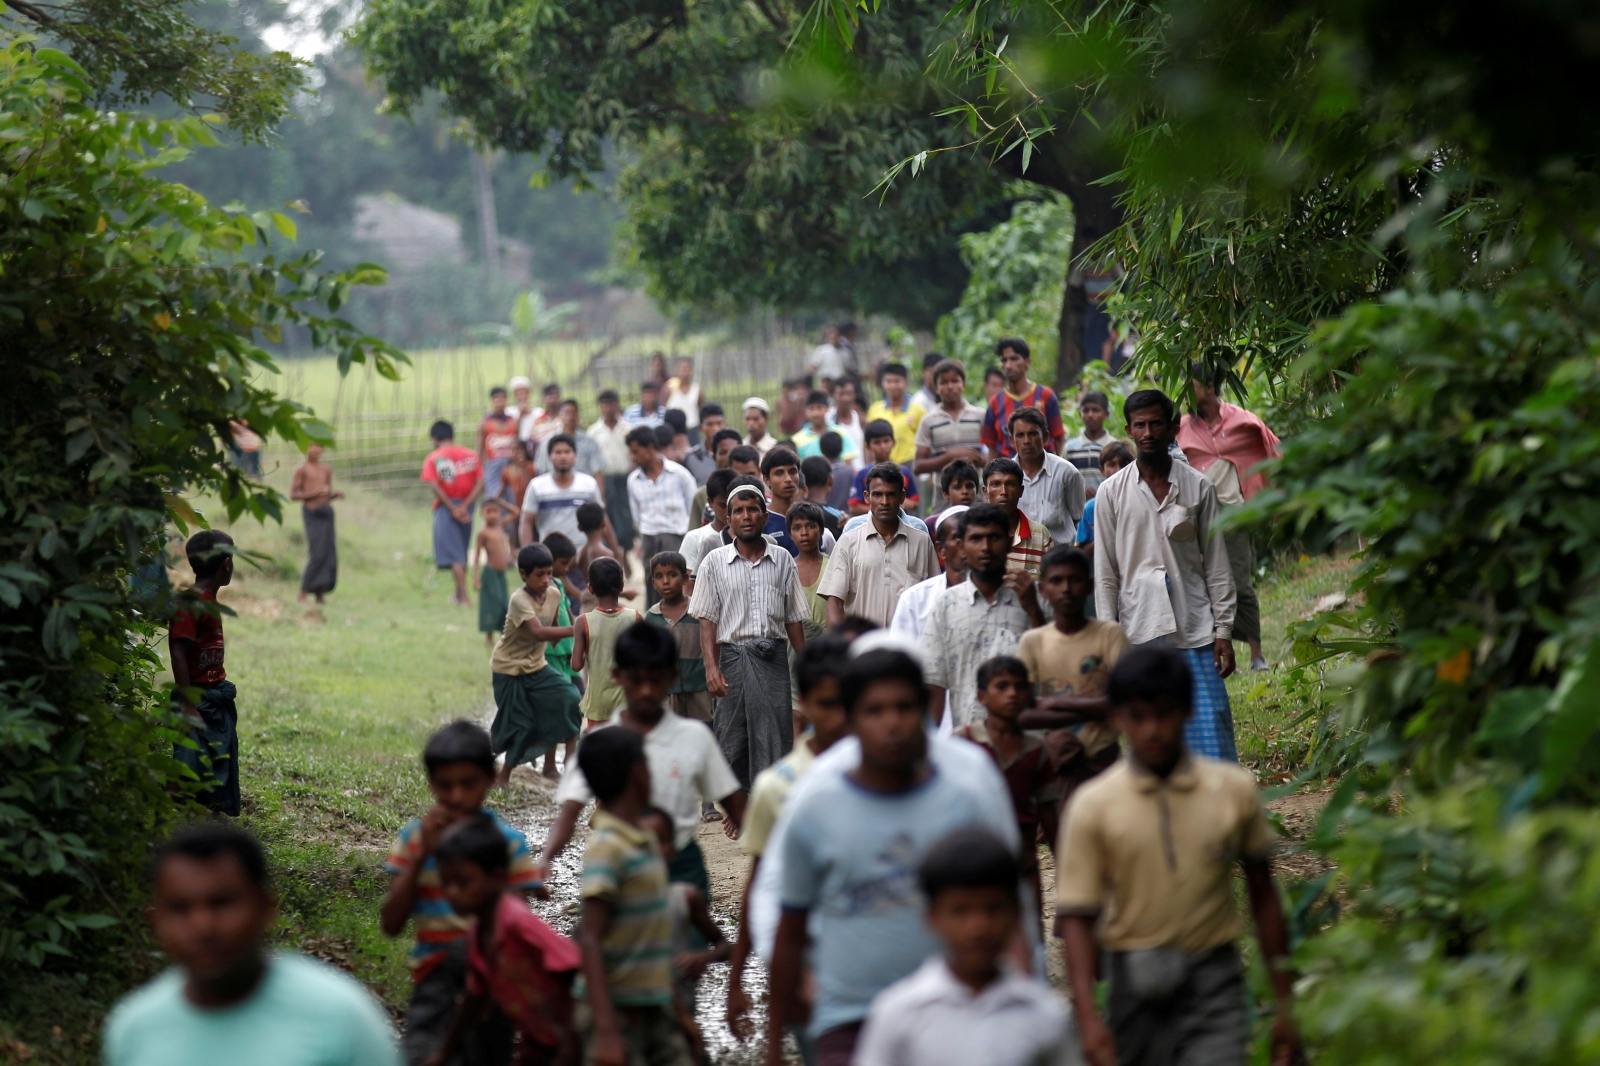 Myanmar Rohingyas rights abuse